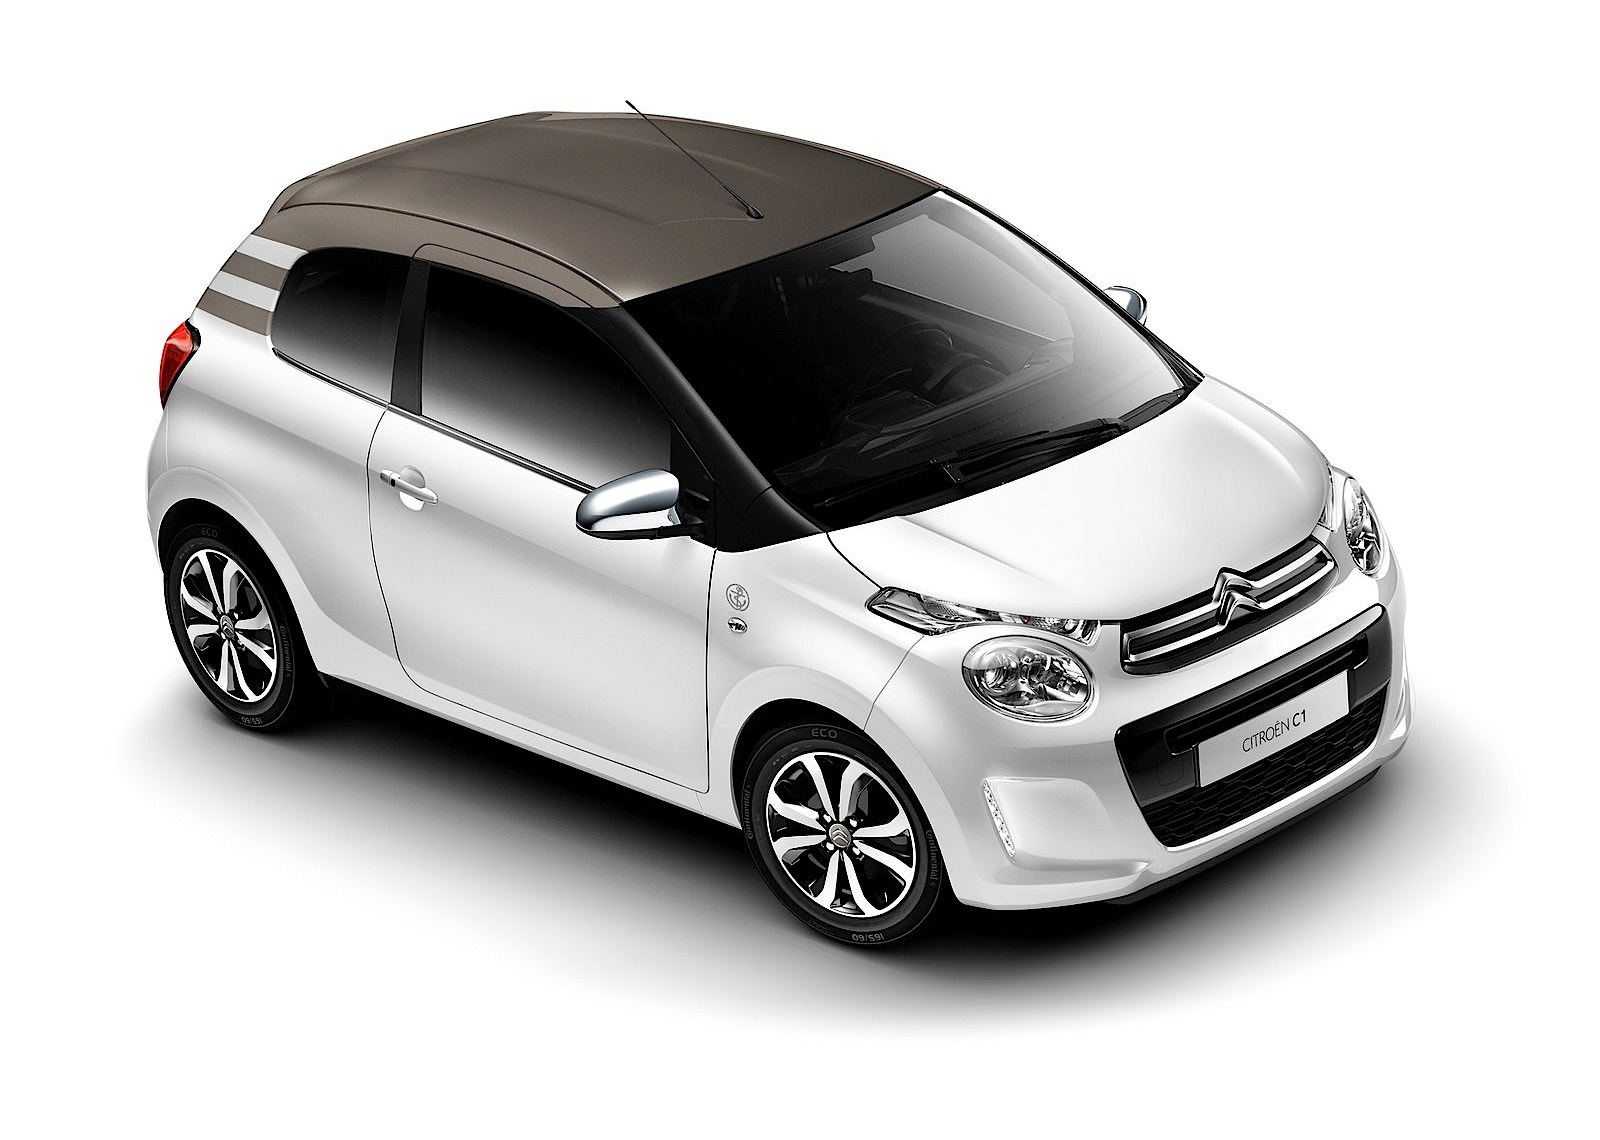 citroen c1 3 doors specs 2014 2015 2016 2017 2018 autoevolution. Black Bedroom Furniture Sets. Home Design Ideas